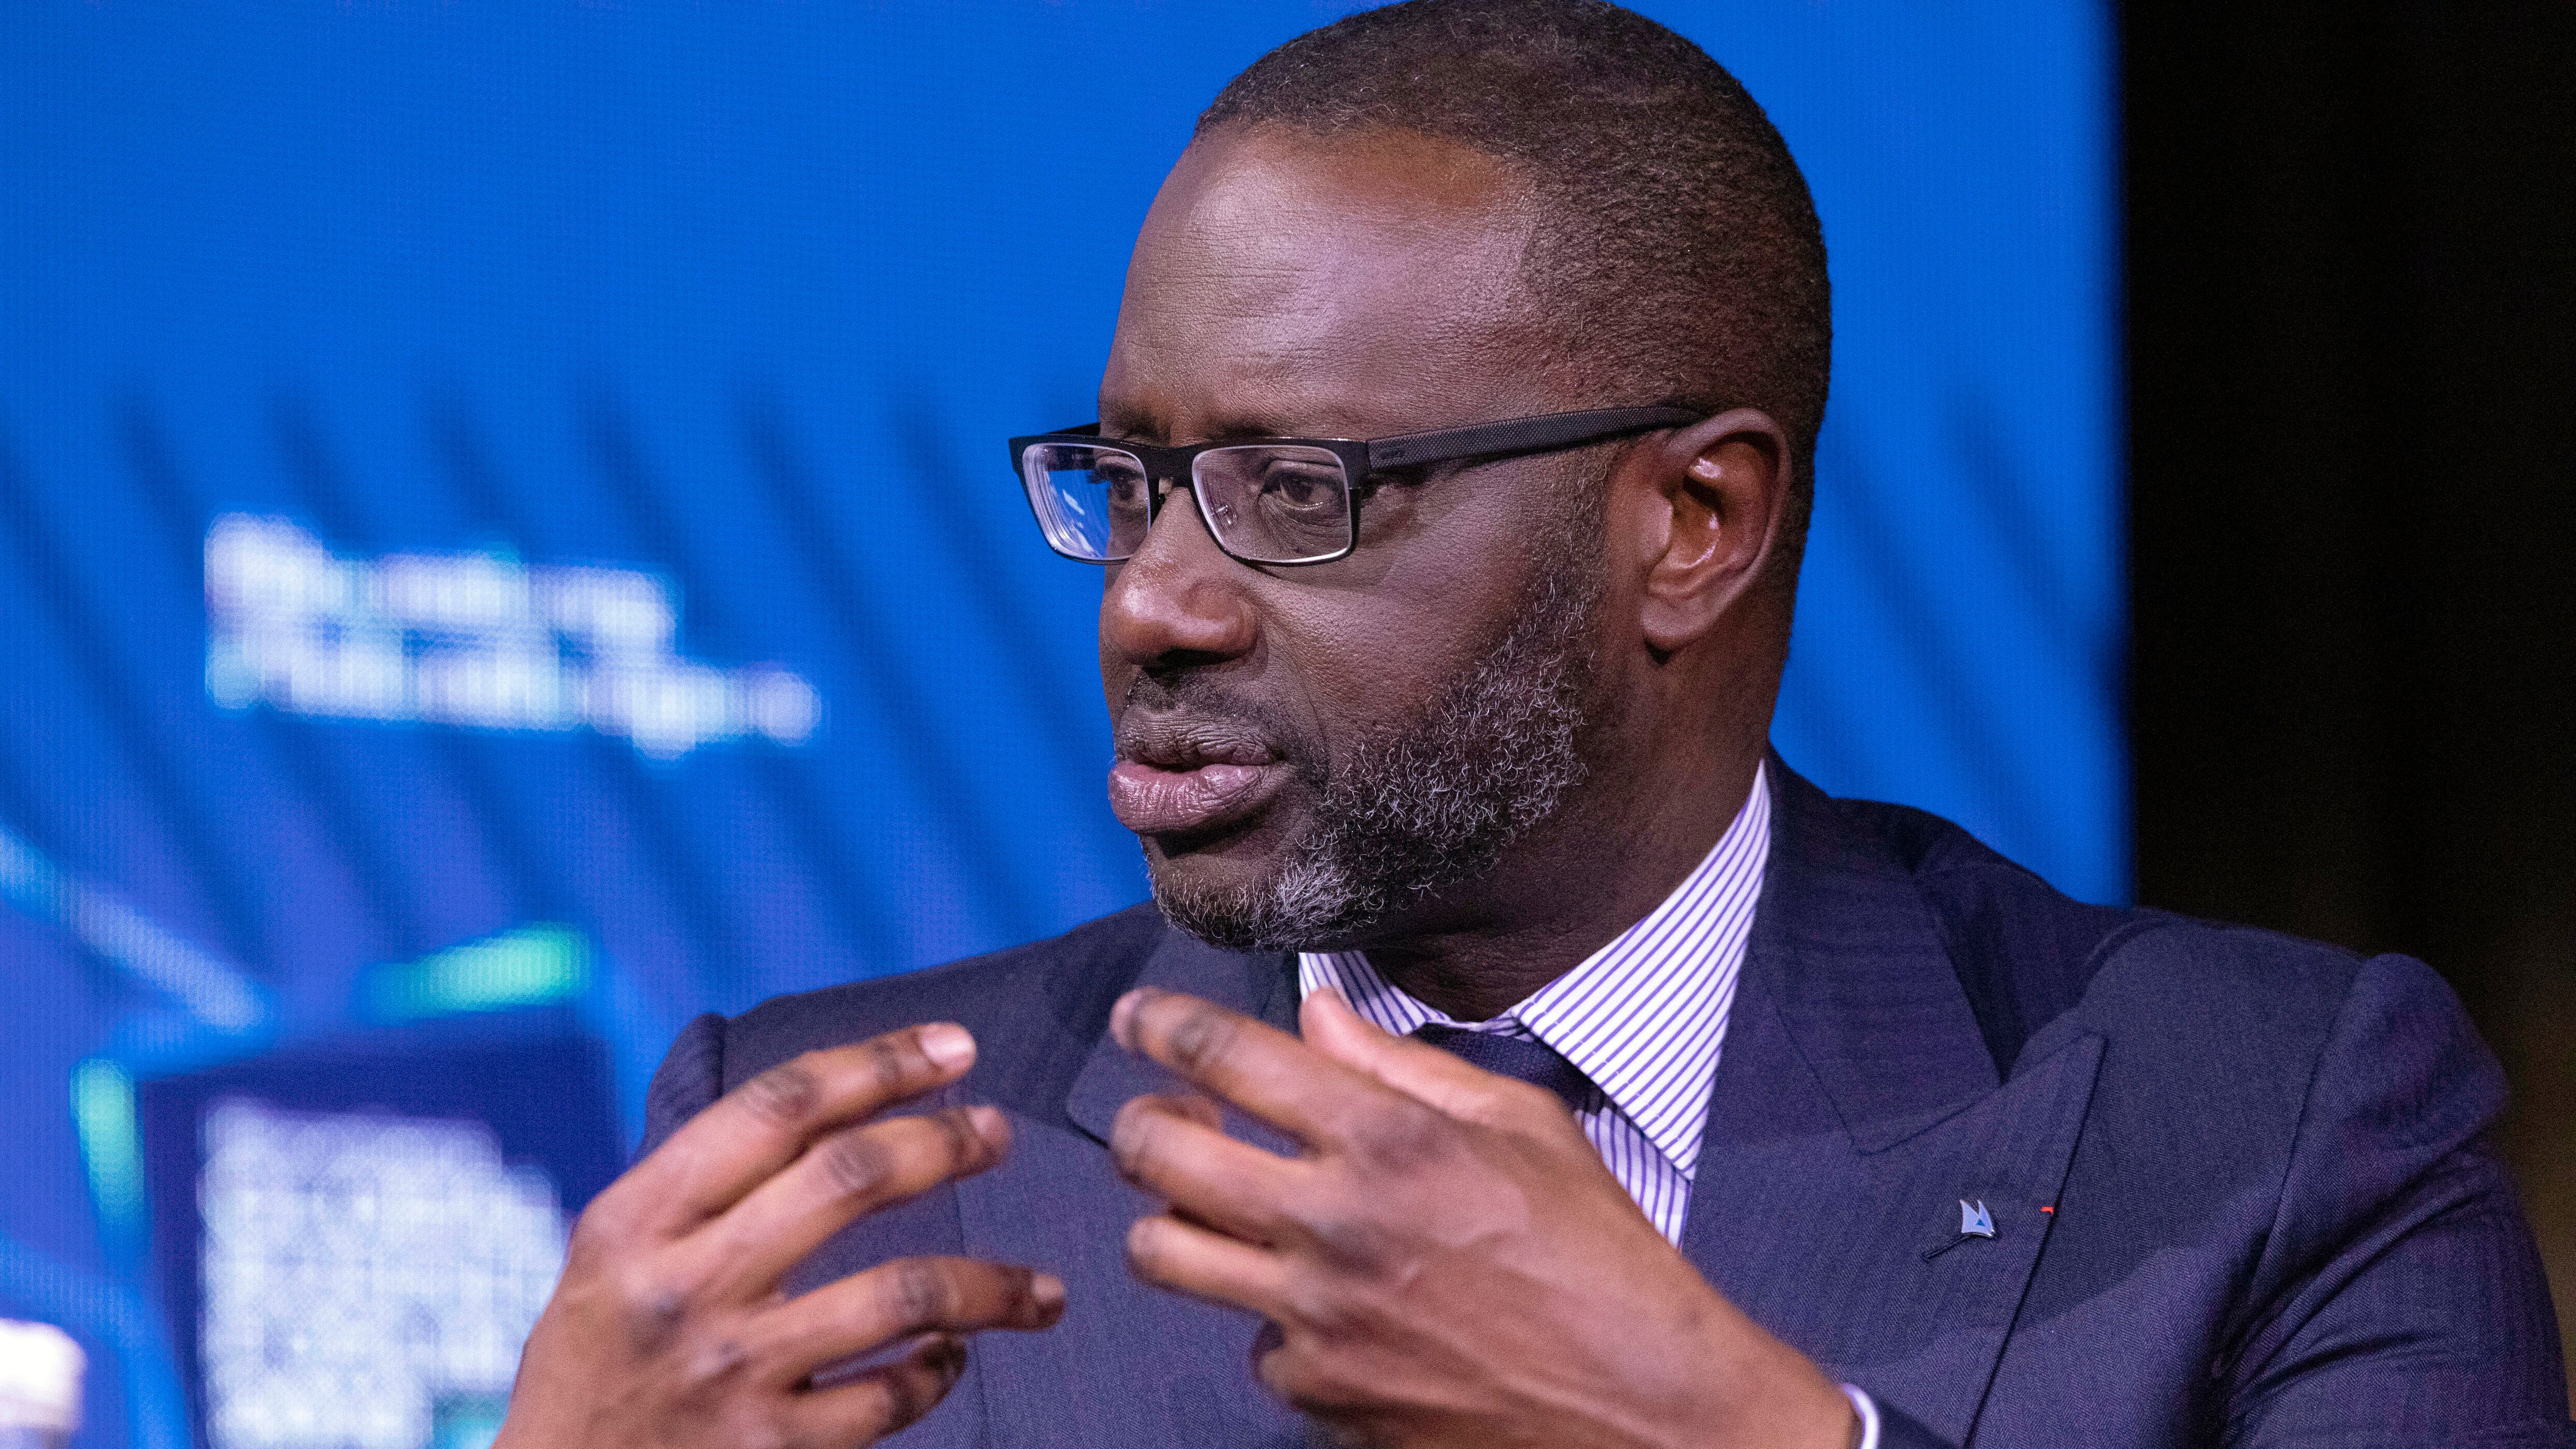 Credit Suisse Says Ceo Thiam Resigns Amid Spying Scandal